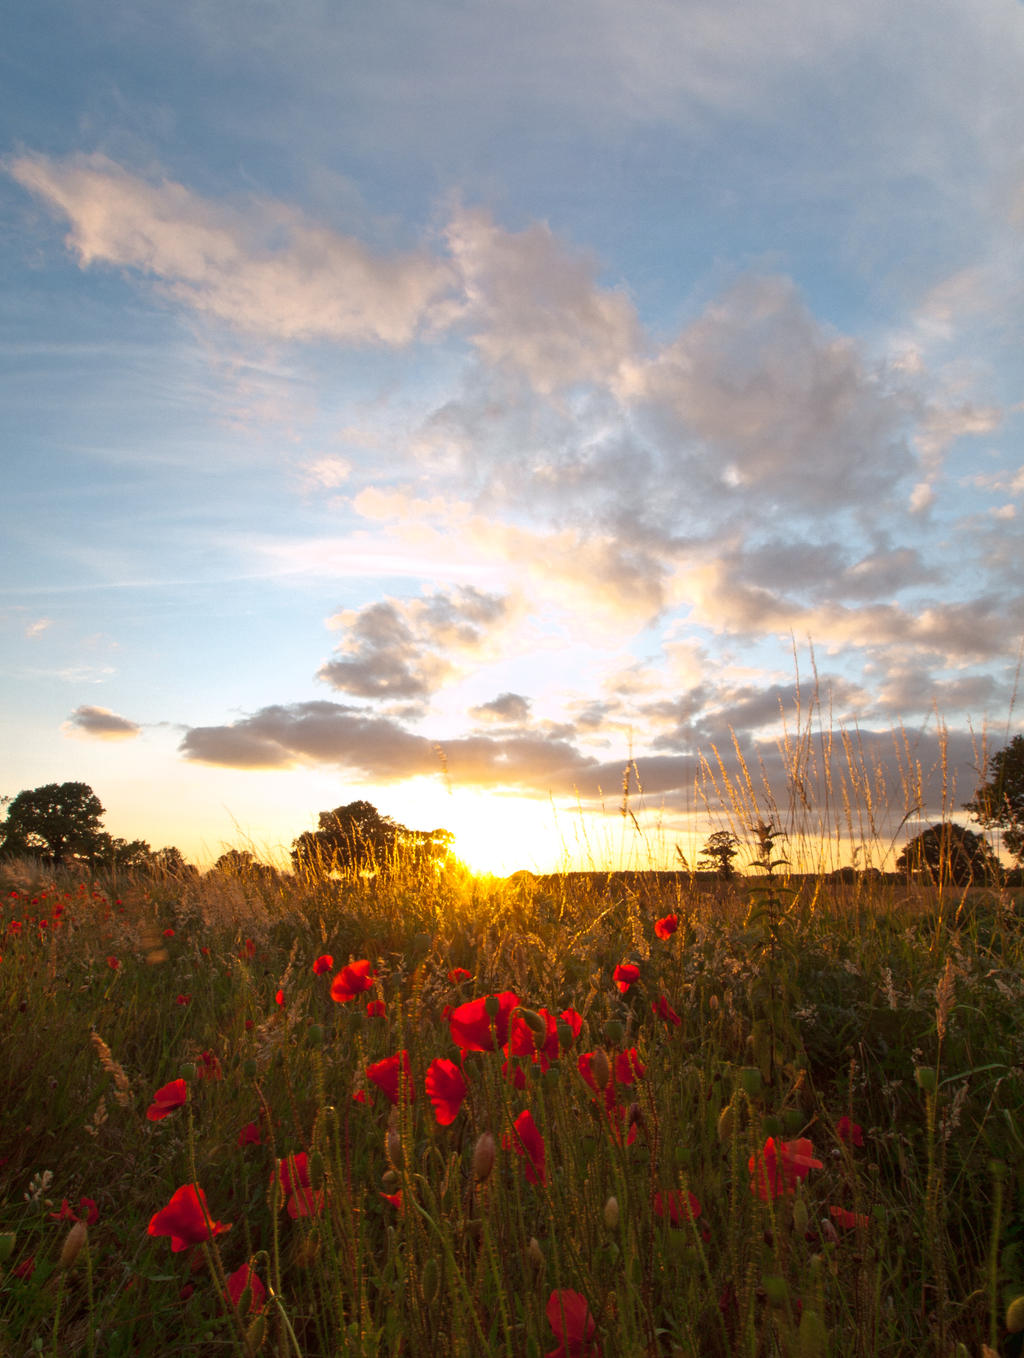 Sunset with Poppy Flowers by davepphotographer